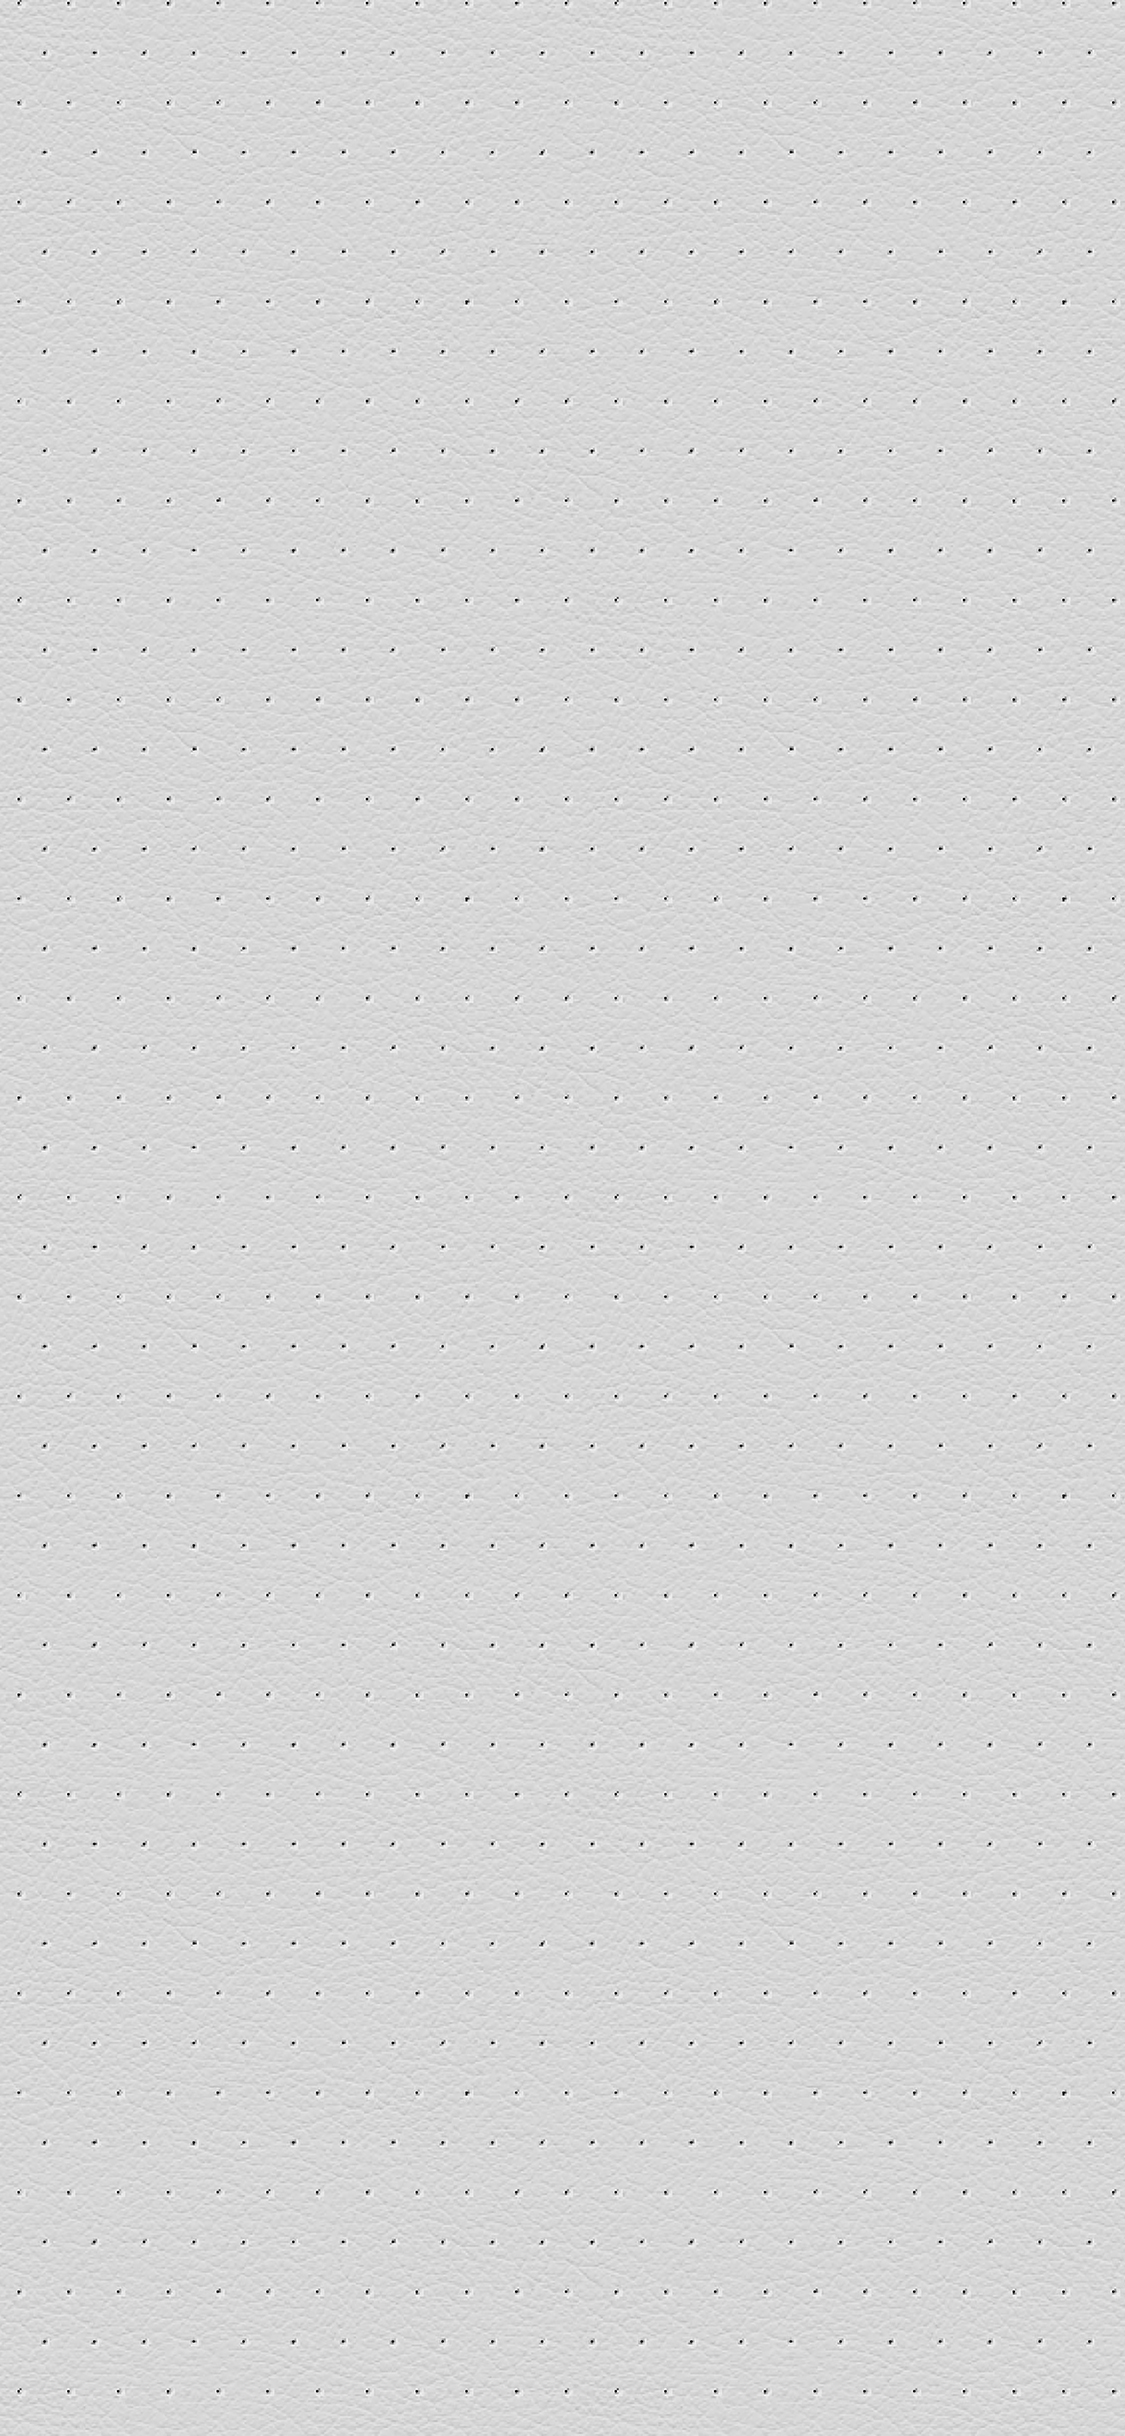 iPhoneXpapers.com-Apple-iPhone-wallpaper-vb14-wallpaper-perforated-white-pattern